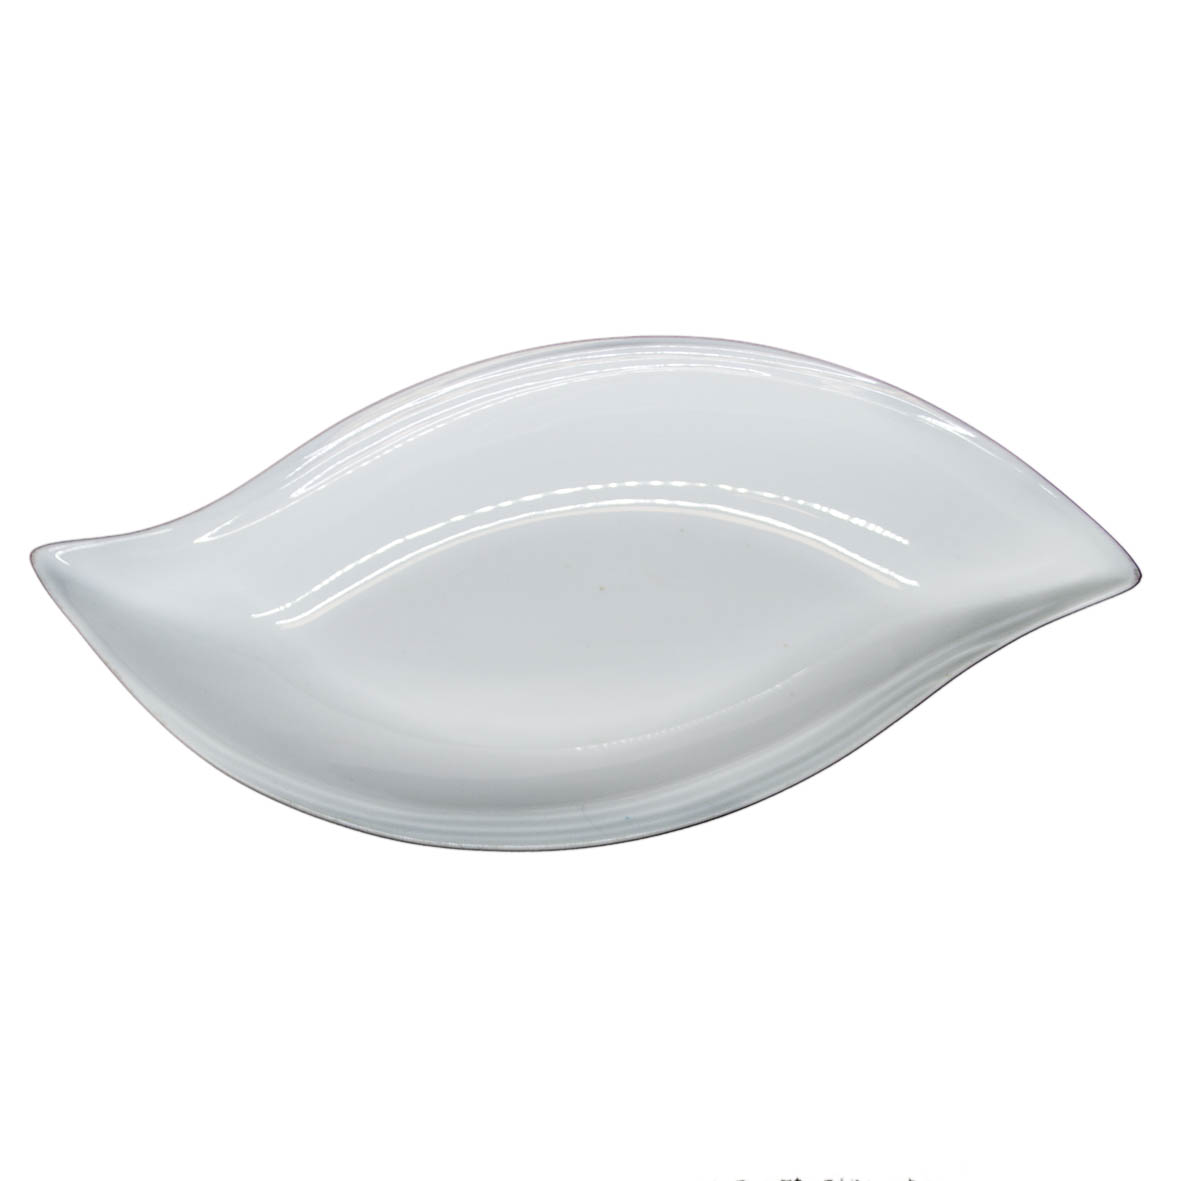 Travessa de Porcelana Oval Borda S Frisada 43x21x6